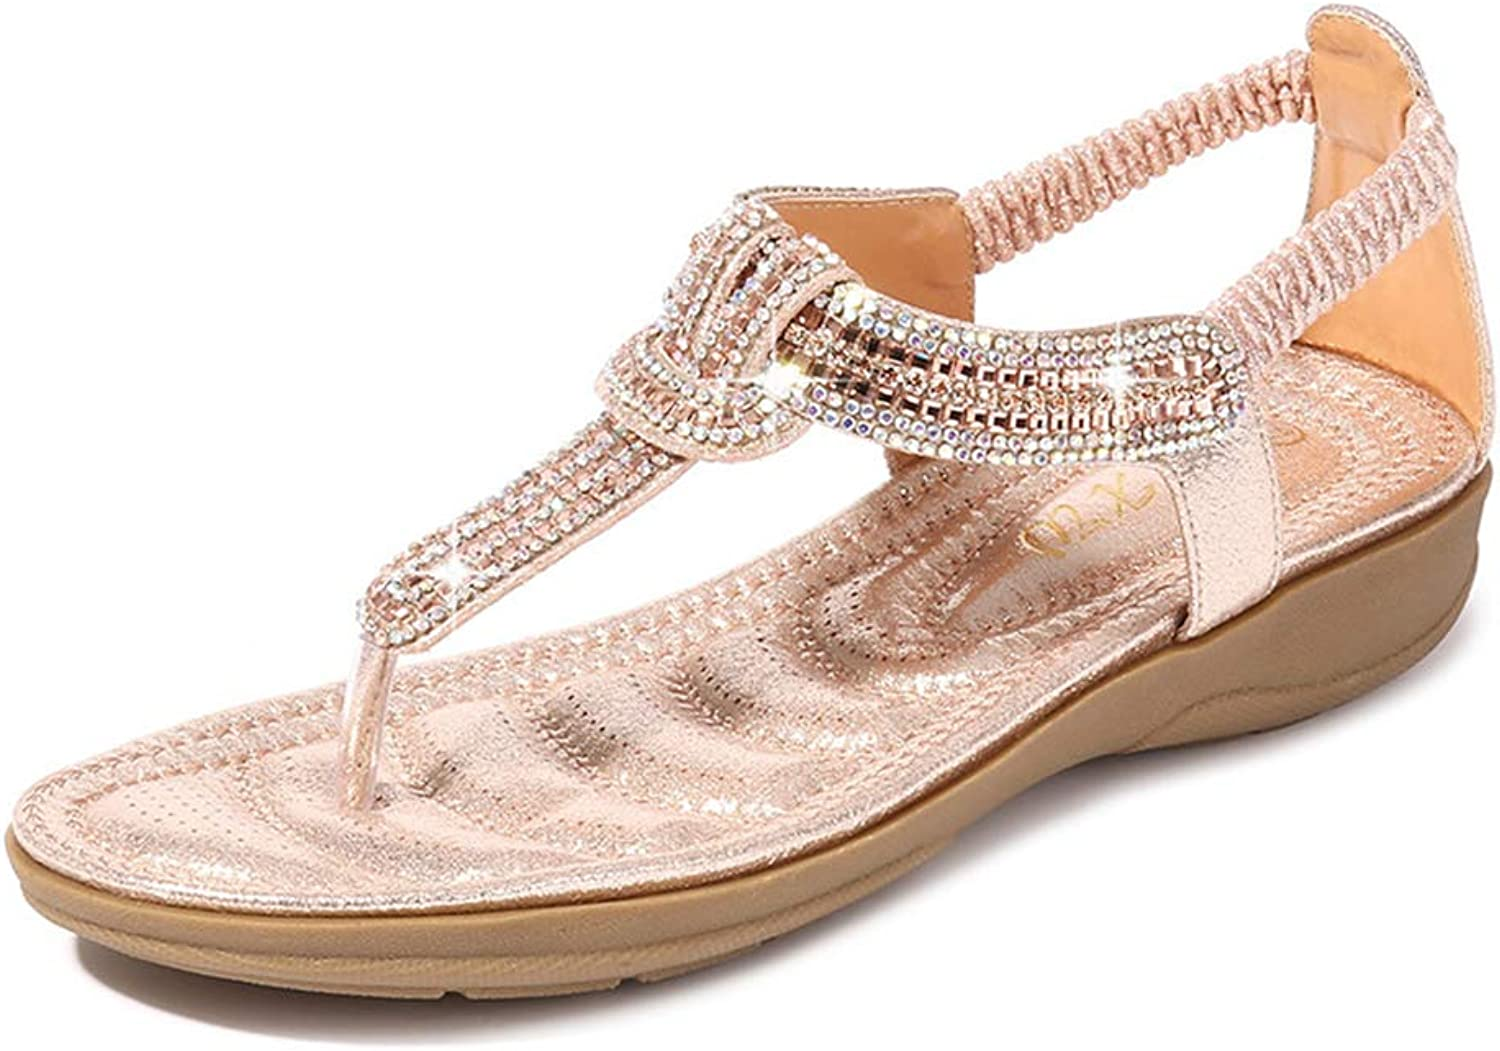 Baviue Women's Flat Fashion Leather Jeweled Thong Sandals Sandles